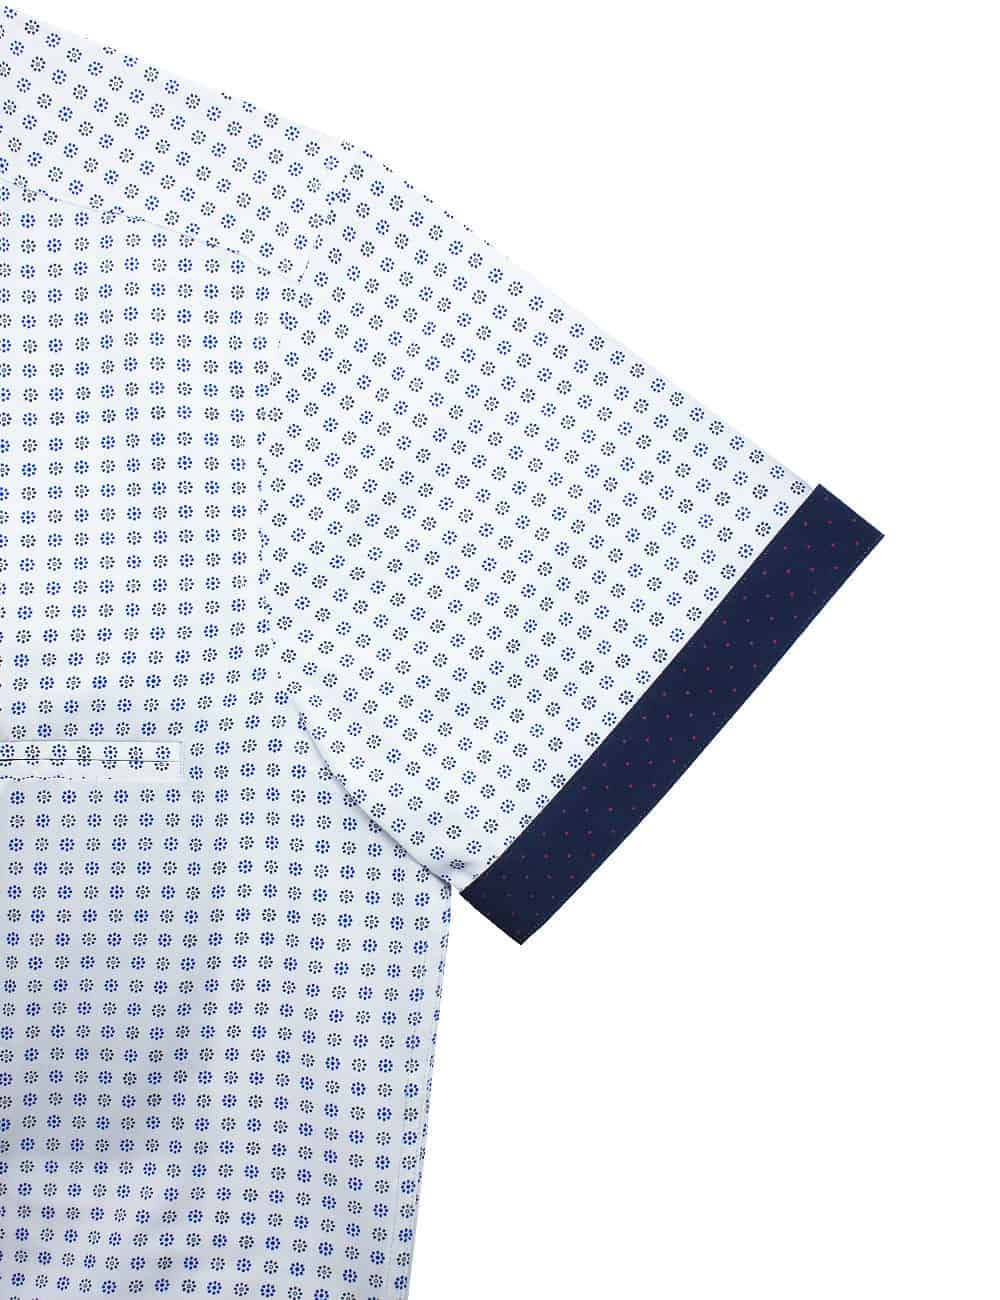 Relaxed Fit White with Blue Print Eco-ol Bamboo Blend Wrinkle Free Short Sleeve Shirt RF9SNB5.17